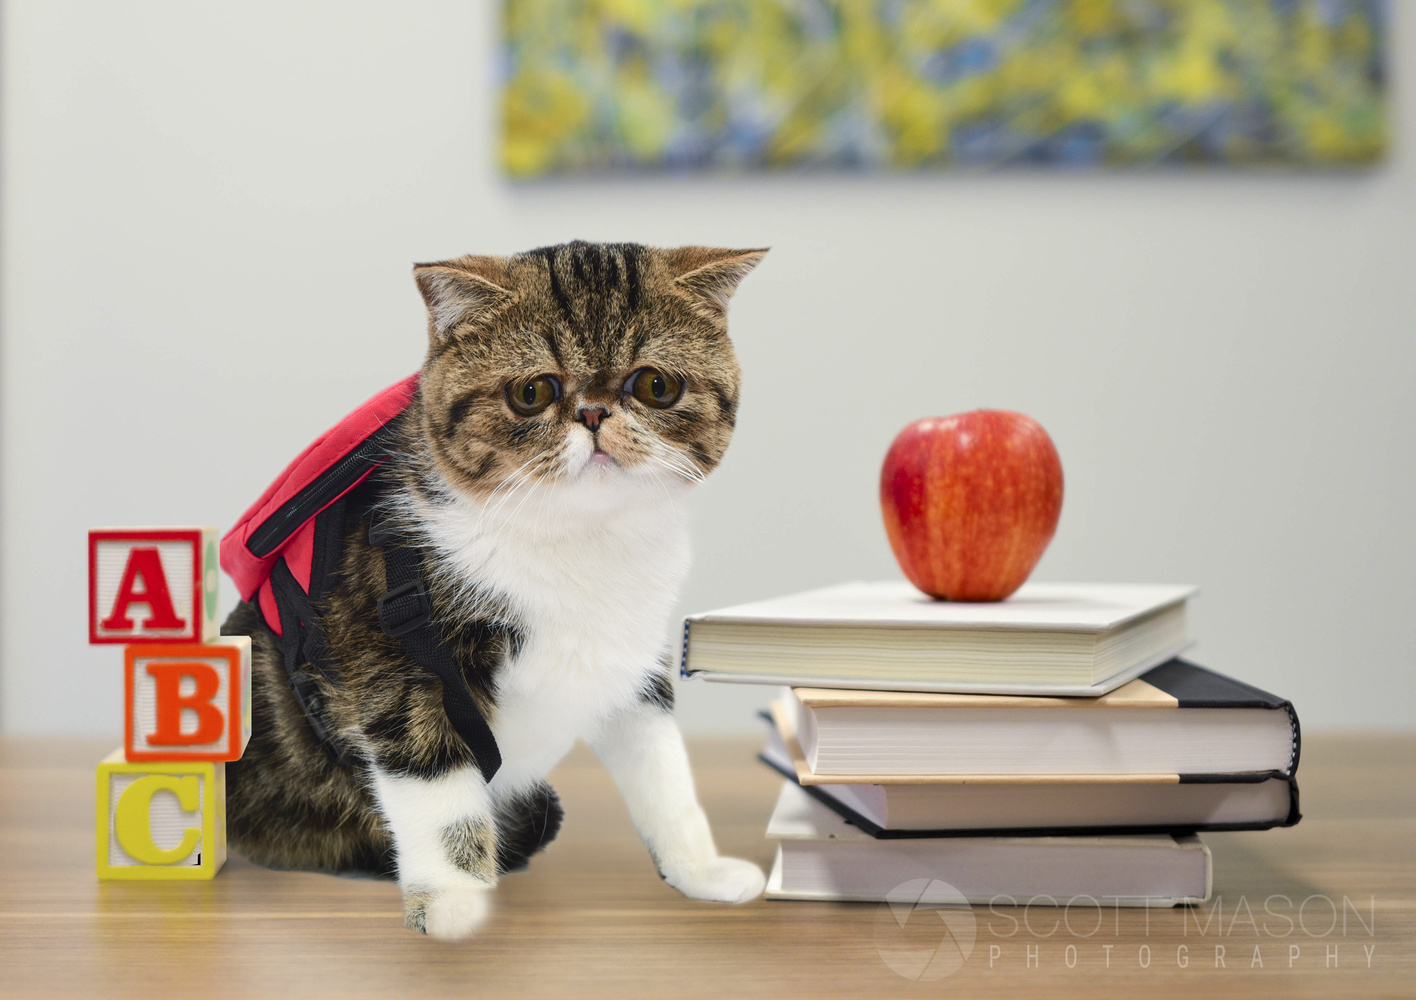 a cat in a back-to-school scene with a backpack on